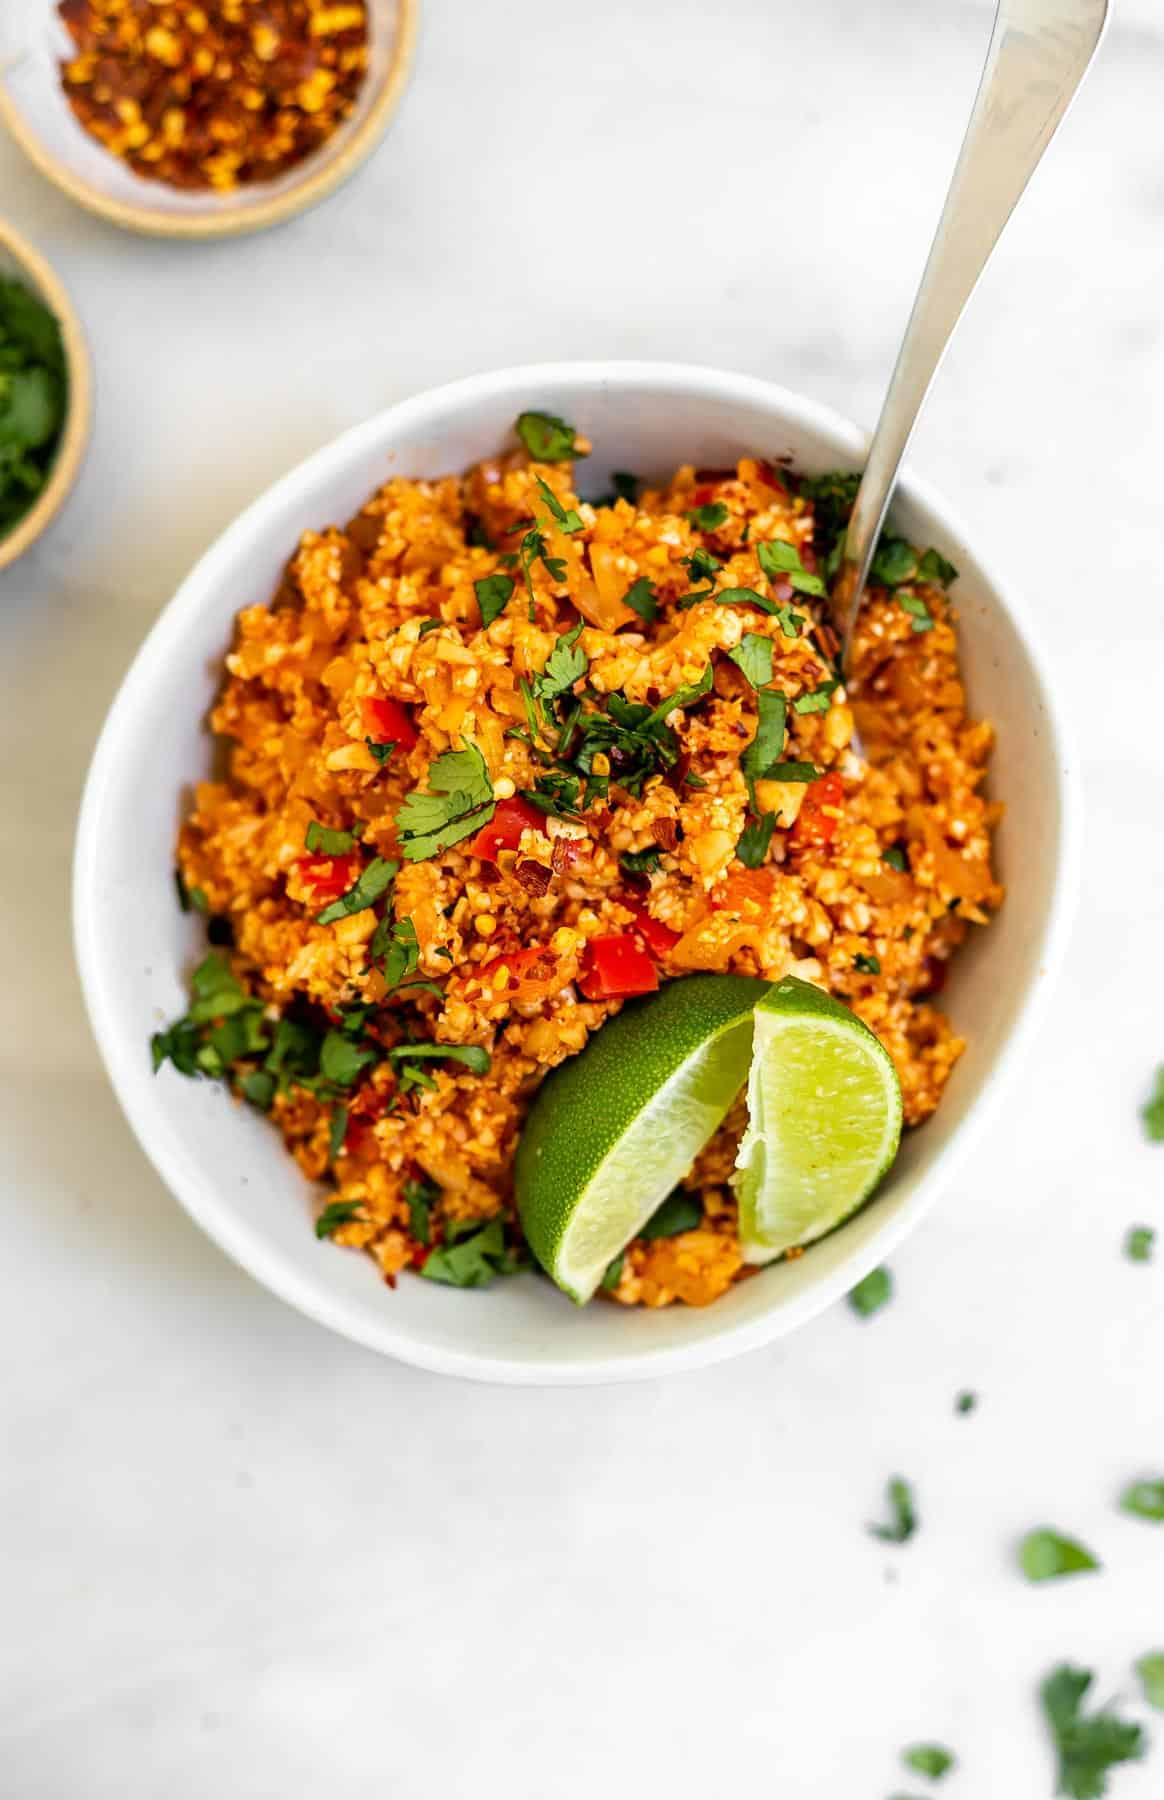 Mexican cauliflower rice in a bowl with red pepper flakes on the side.